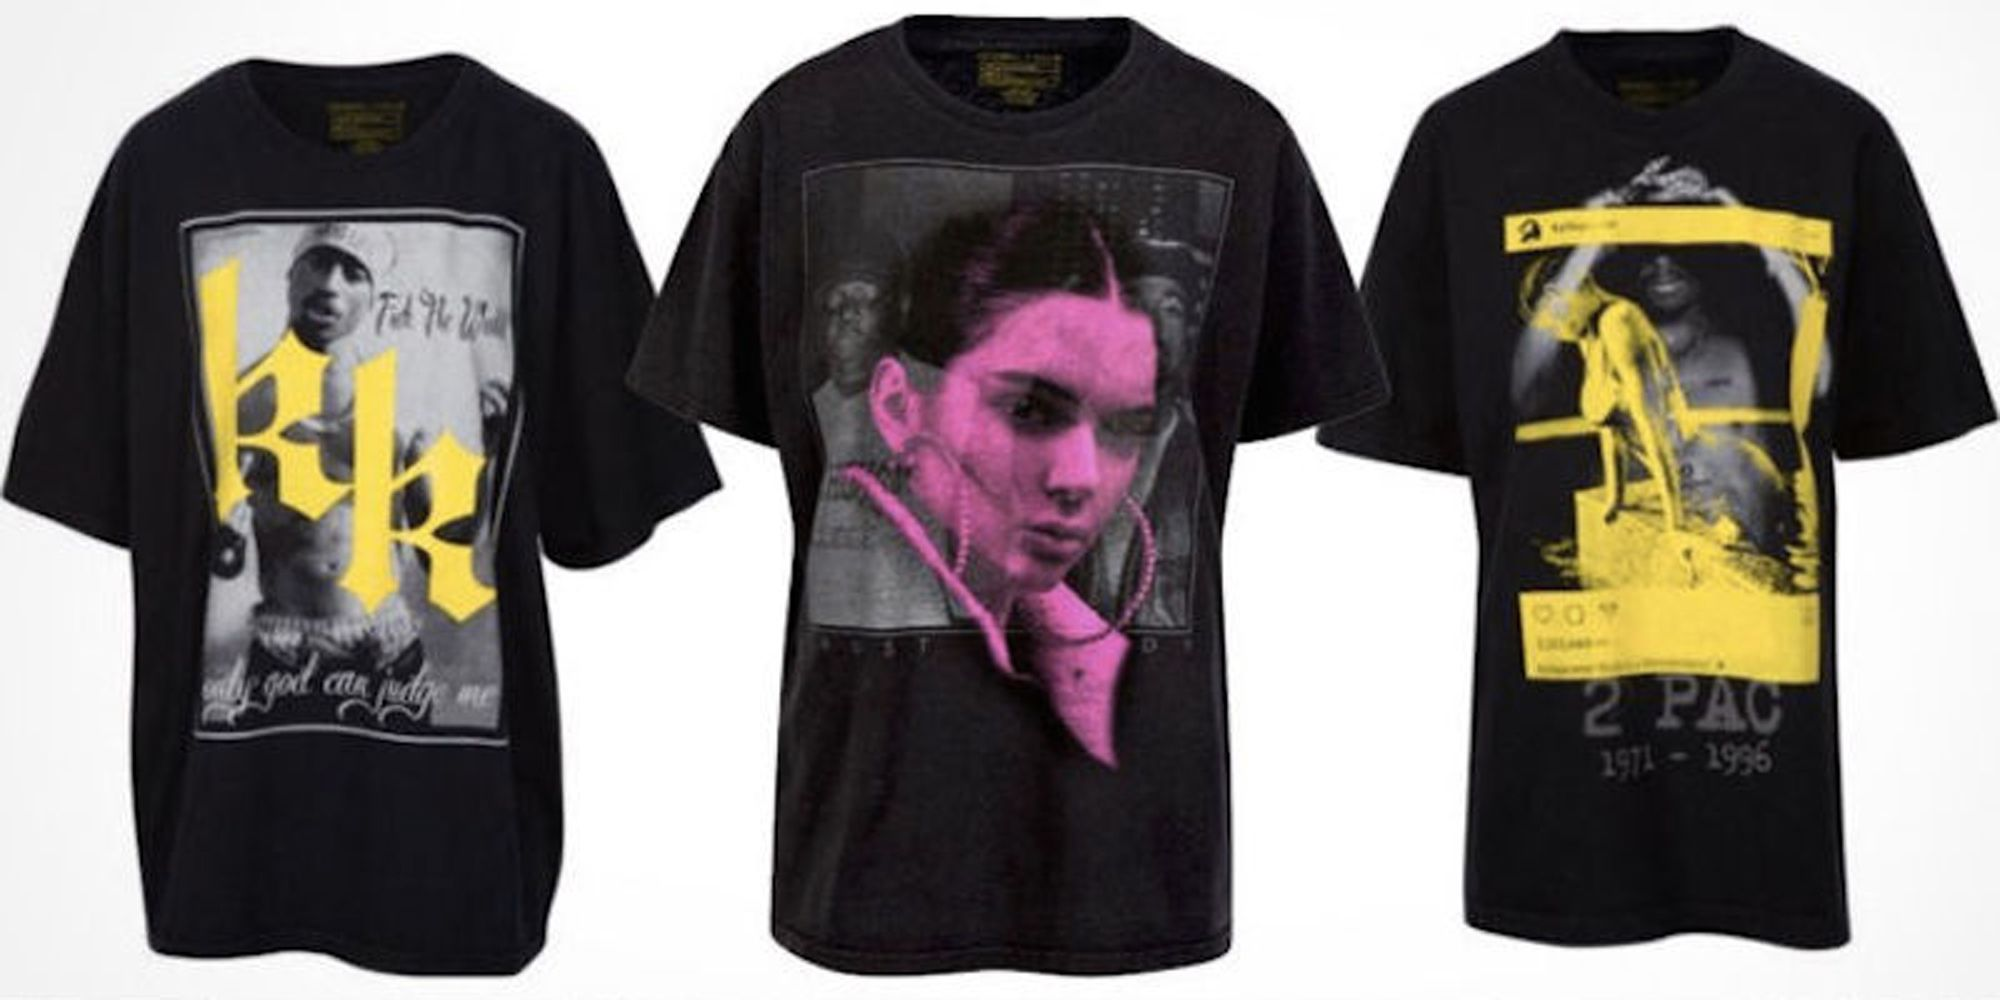 0c00f695 Kendall and Kylie Jenner Are Being Sued for Those Bad T-Shirts Everyone  Hated